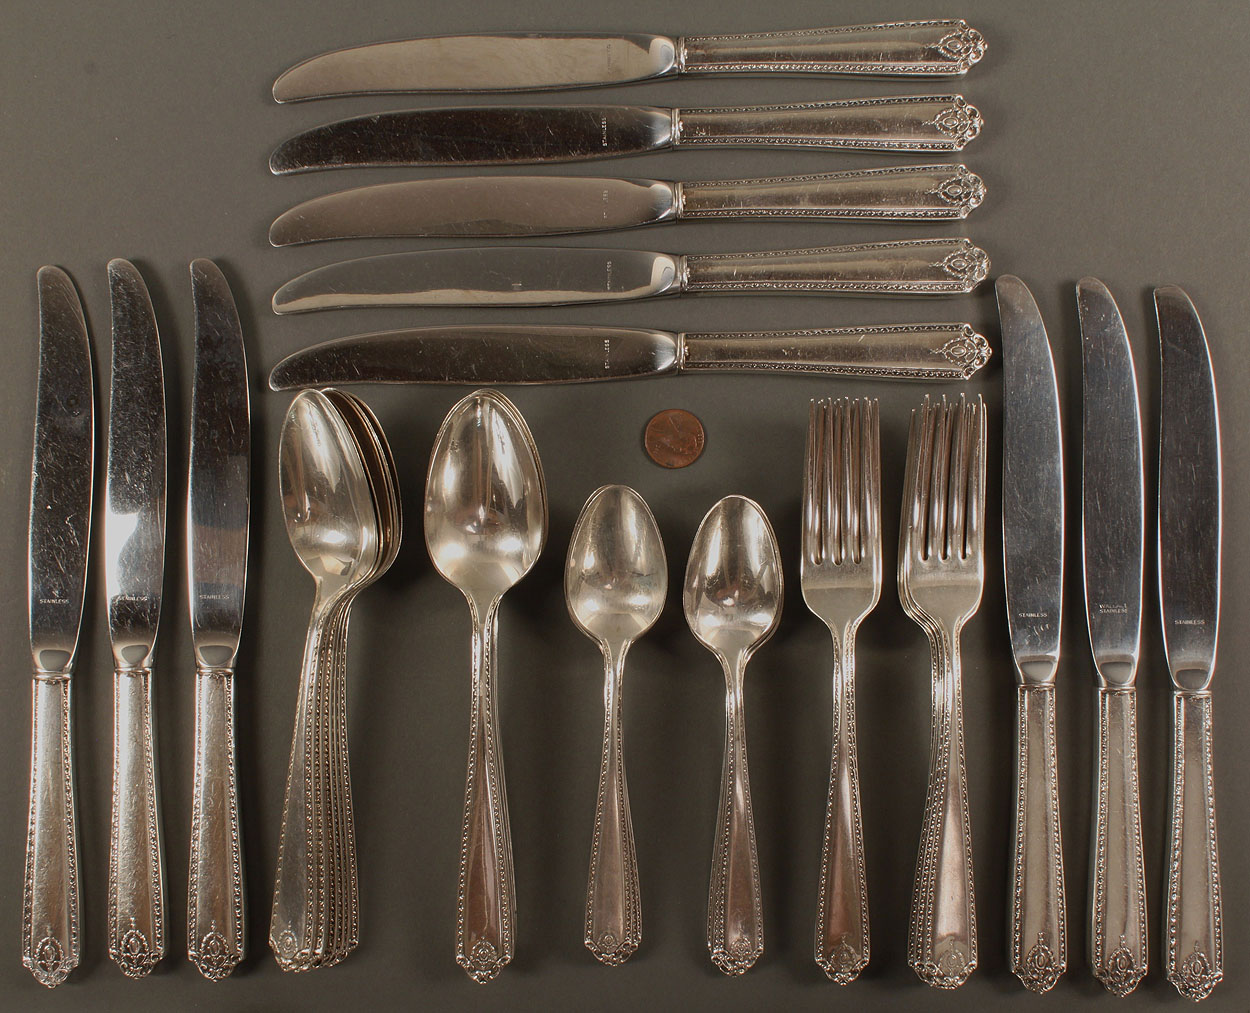 Lot 534 Westmoreland Sterling Silver Flatware 44pcs